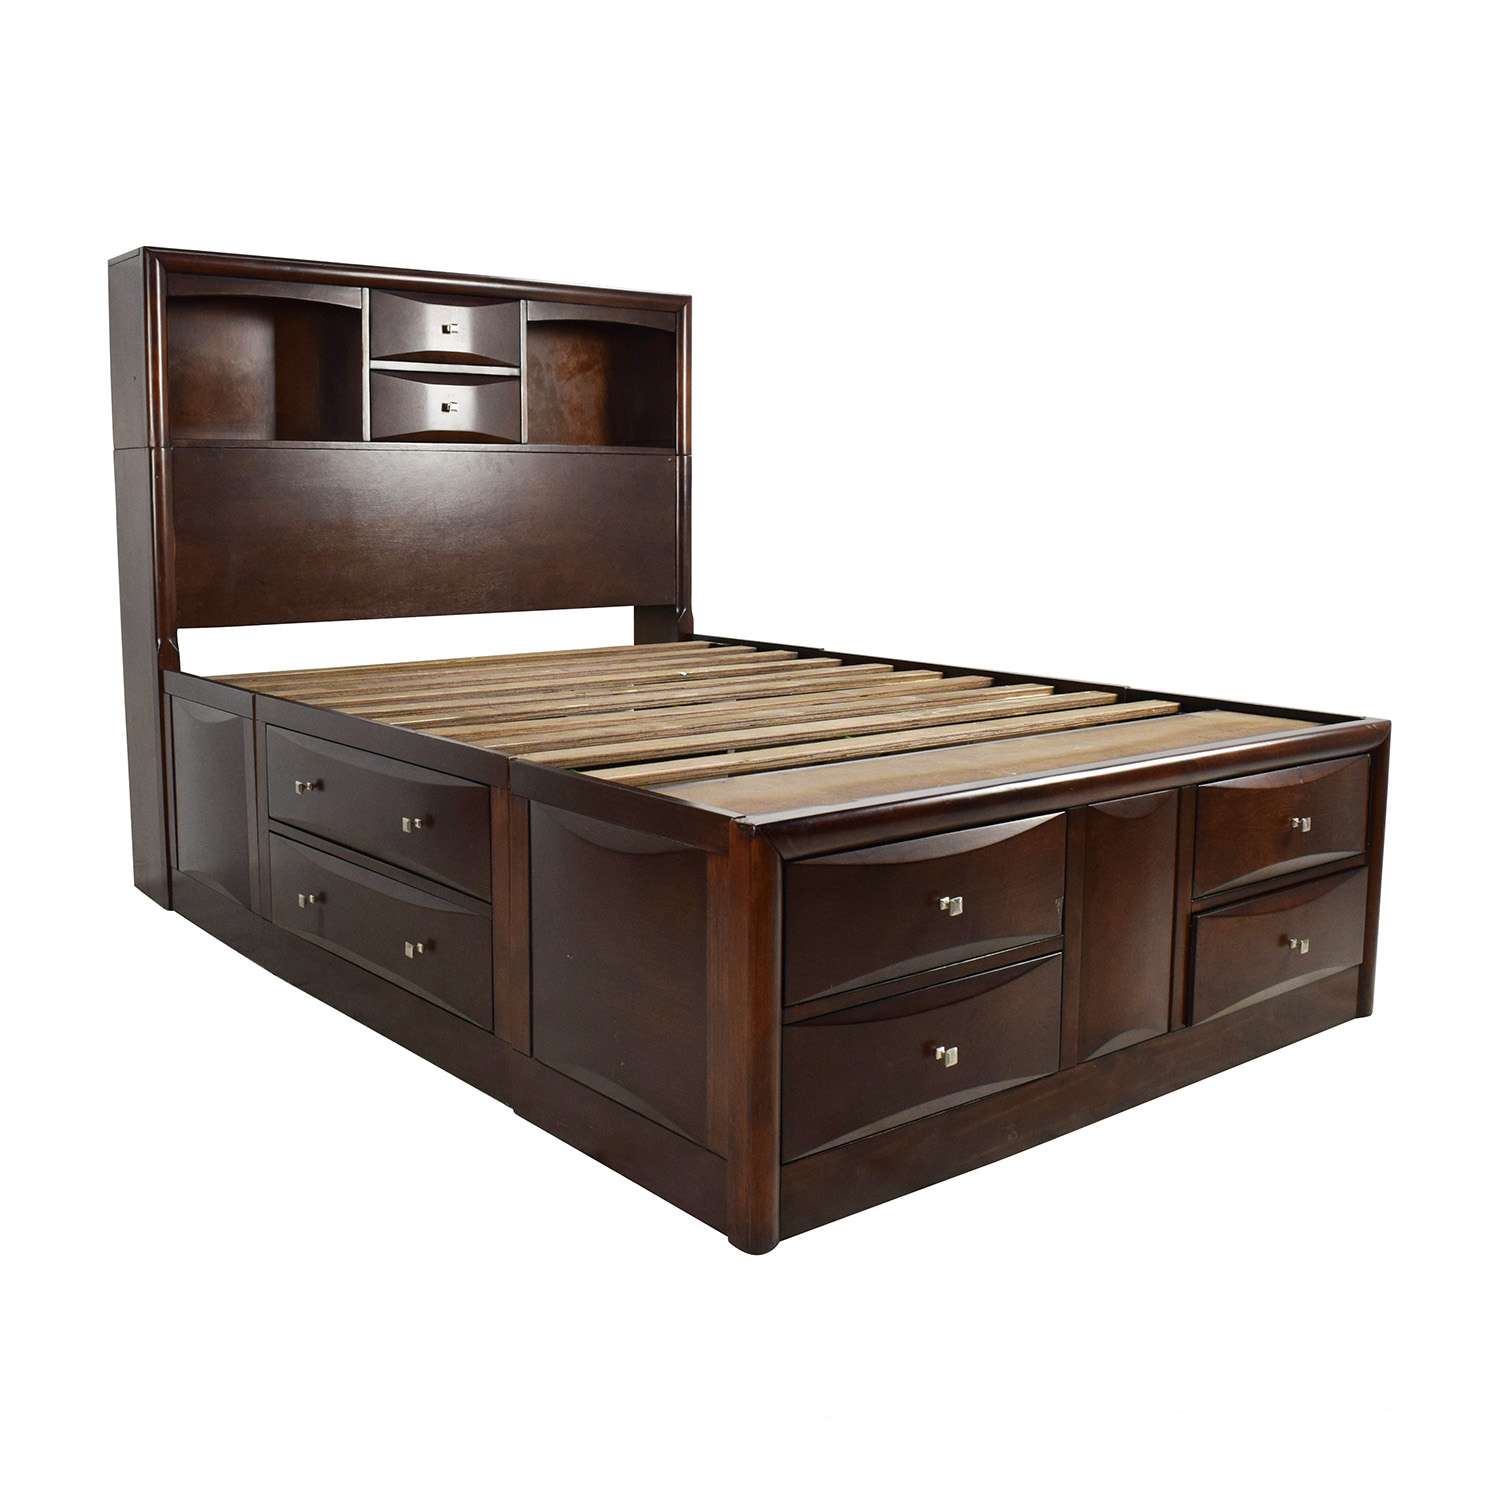 56 off roundhill furniture roundhill furniture emily wooden full size storage bed beds. Black Bedroom Furniture Sets. Home Design Ideas